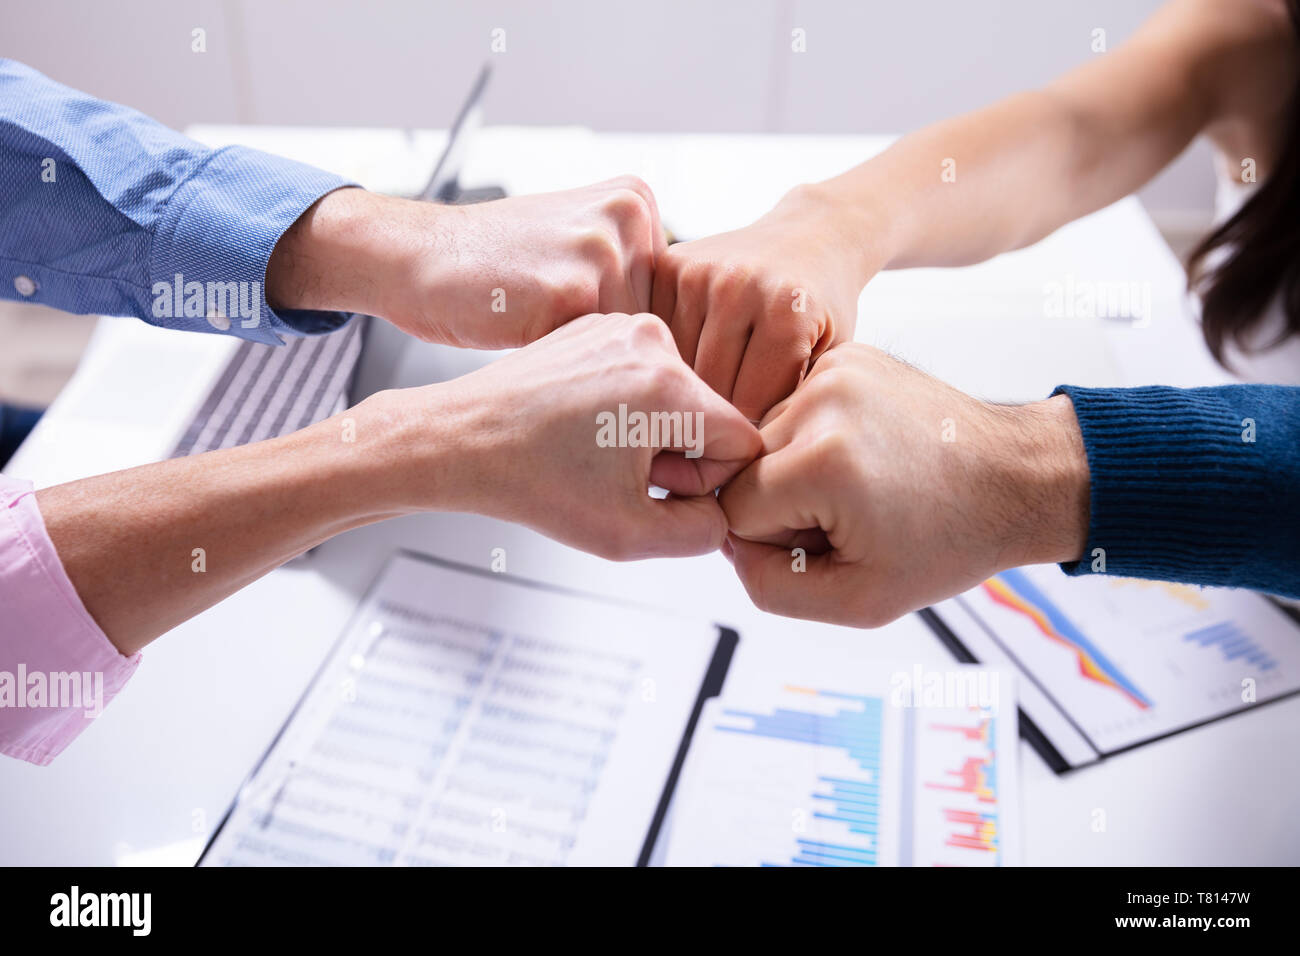 Close-up Of Businesspeople Making Fist Bump Over Desk - Stock Image